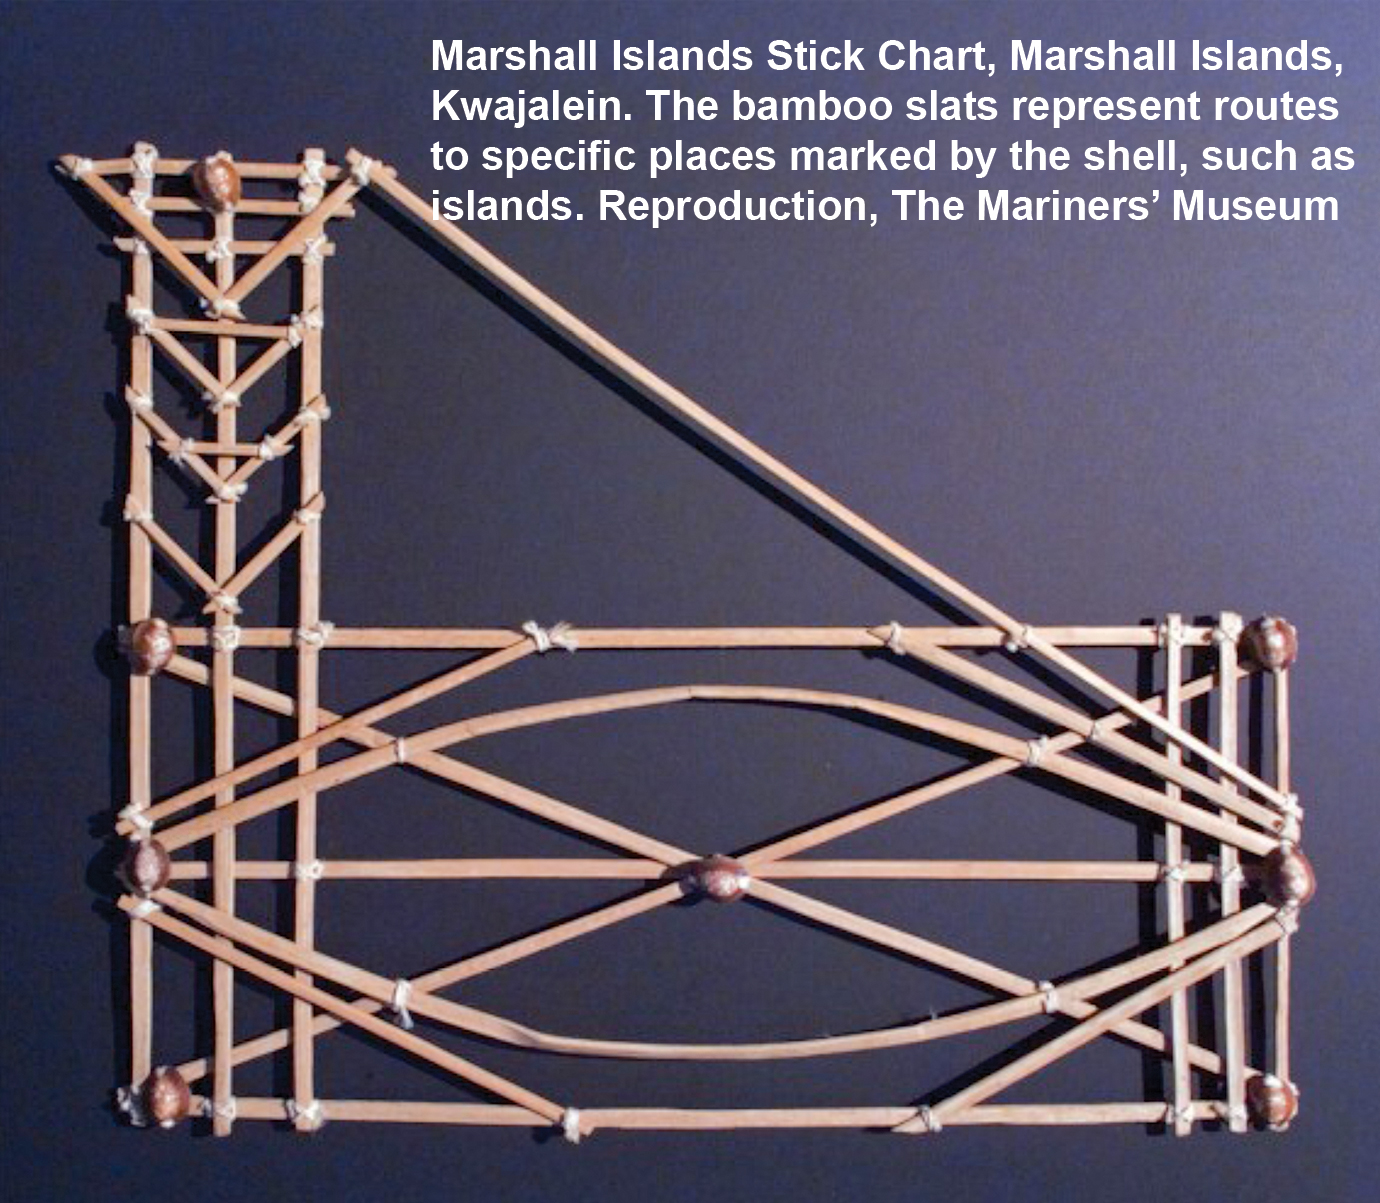 As Captain James Cook was conducting his voyages of exploration and discovery, Polynesian navigators had already successfully explored and settled the islands from New Zealand to Hawaii. Remarkably, the Polynesians had developed a sophisticated and reliable means of wayfinding based not on science and mathematics, but rather on their innate knowledge of the seas and sky.